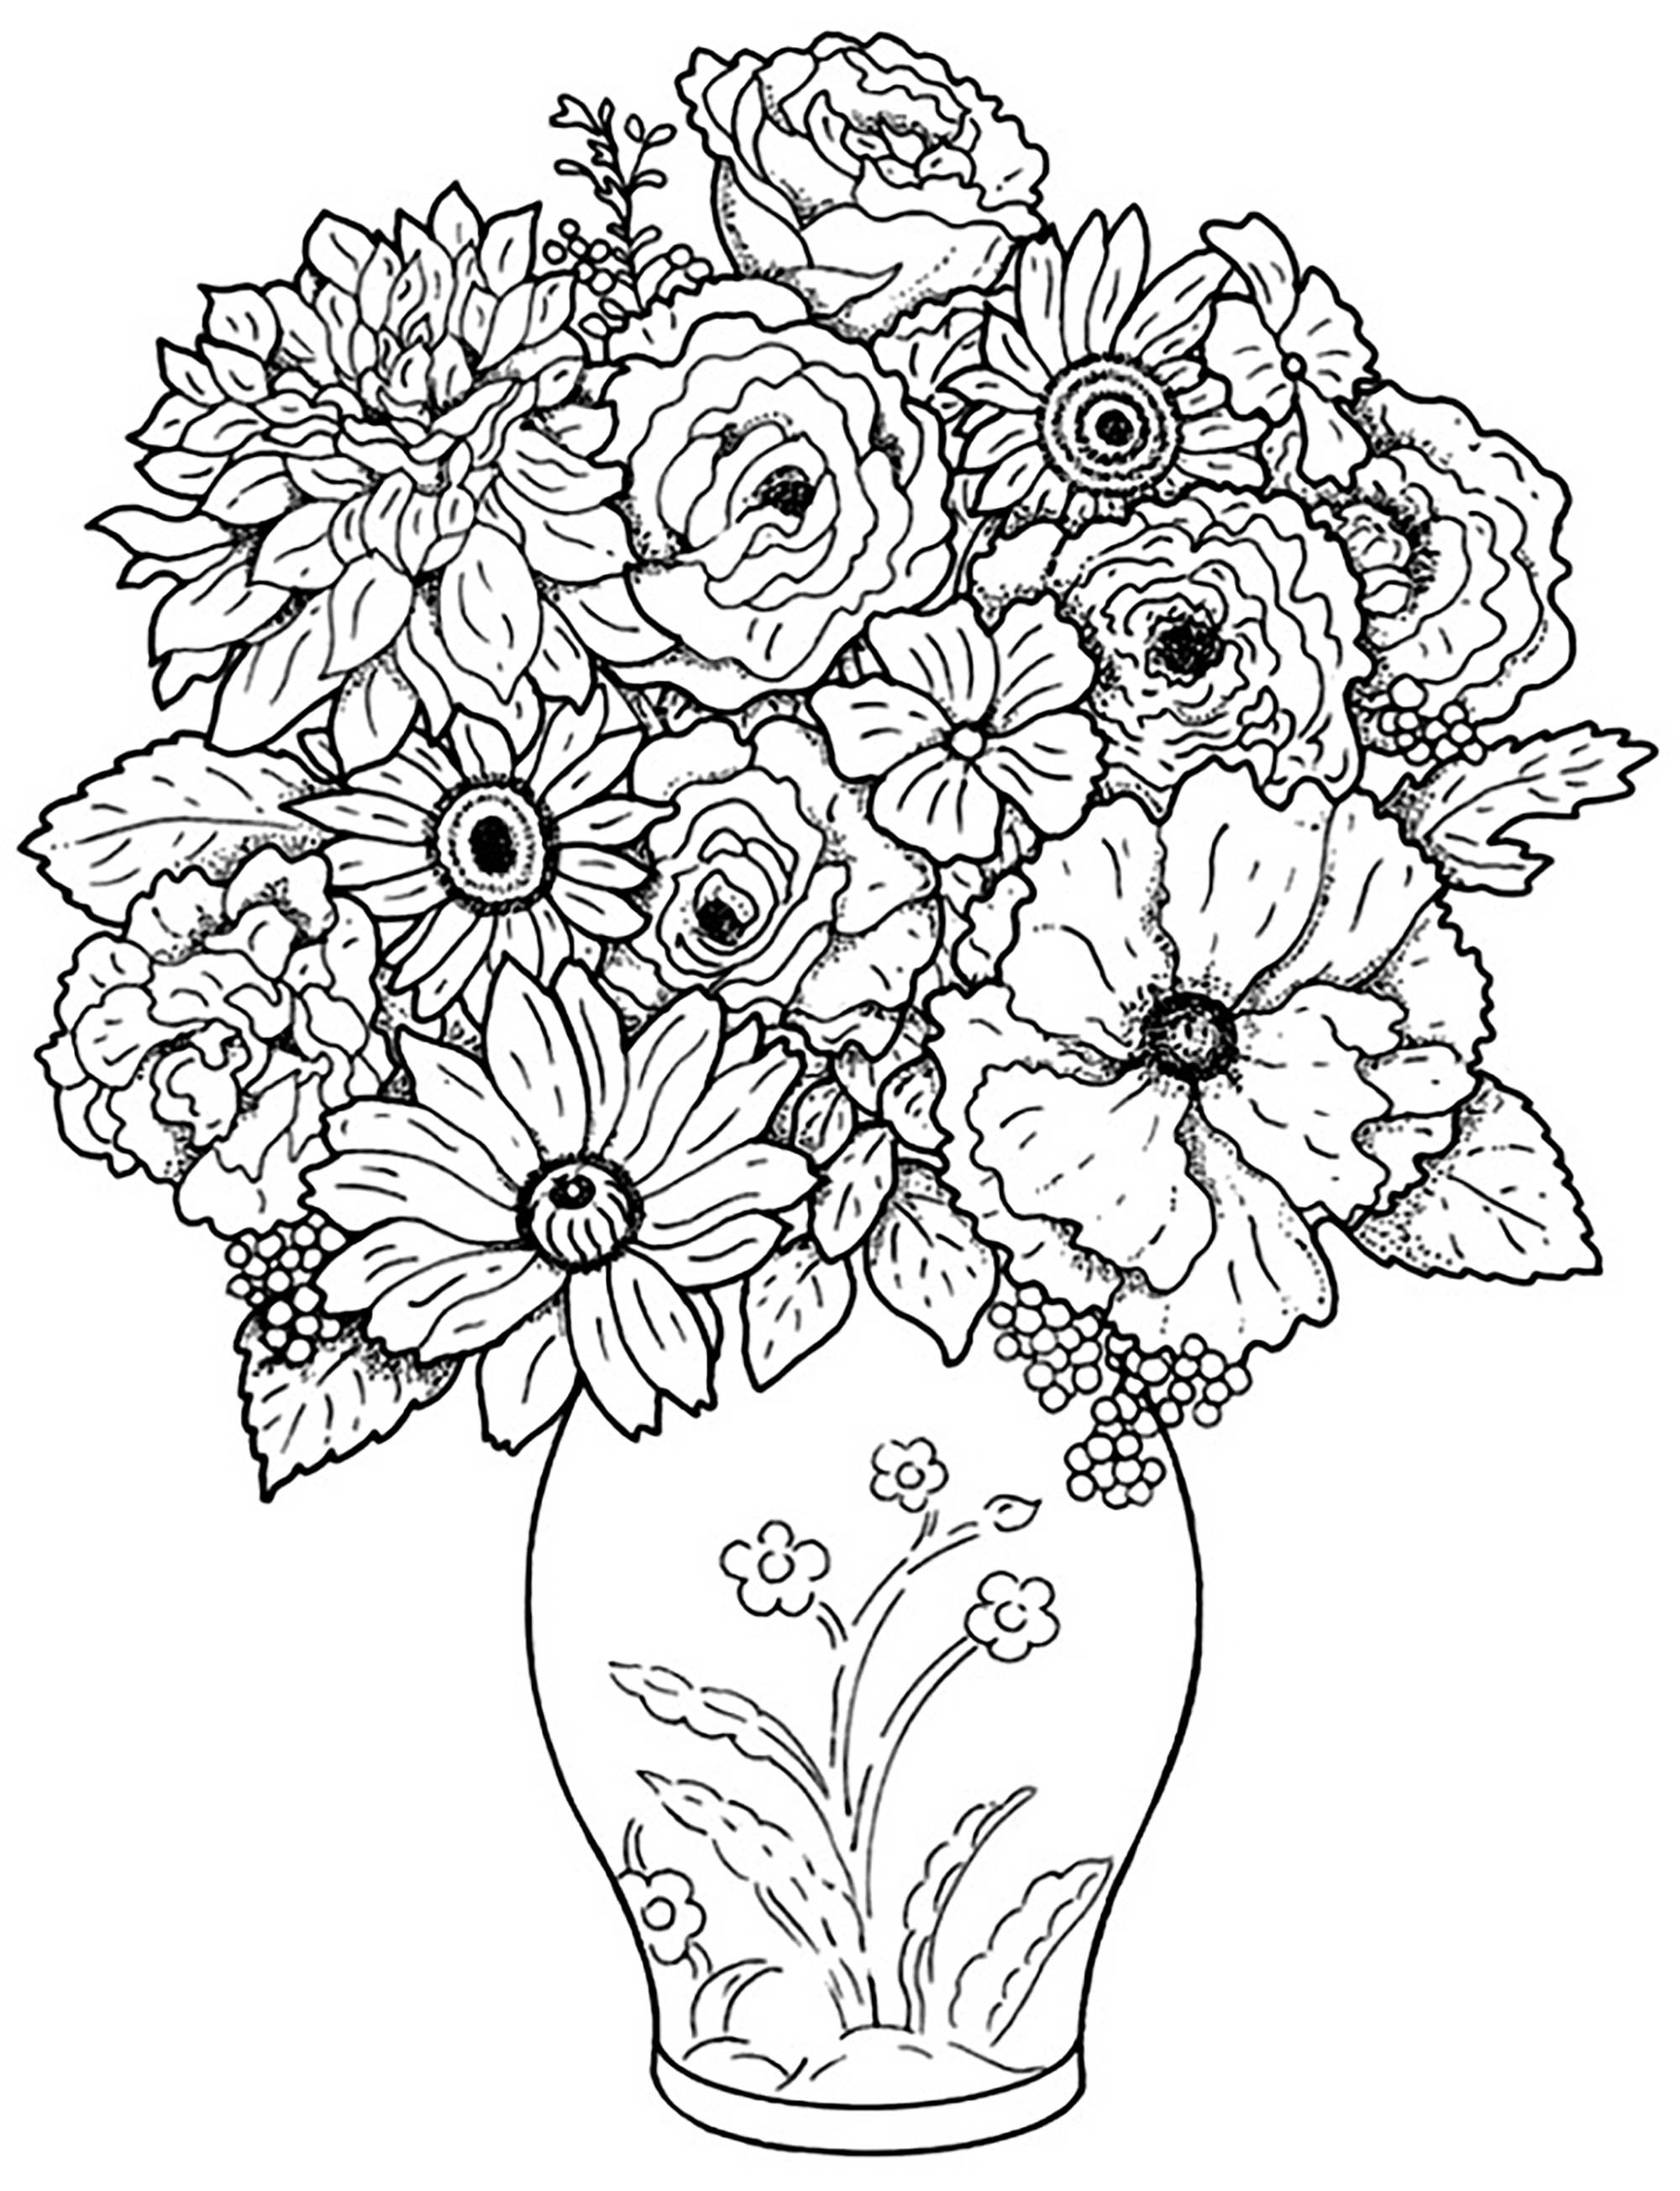 printable simple flower coloring pages free printable flower coloring pages for kids butterfly simple printable coloring pages flower